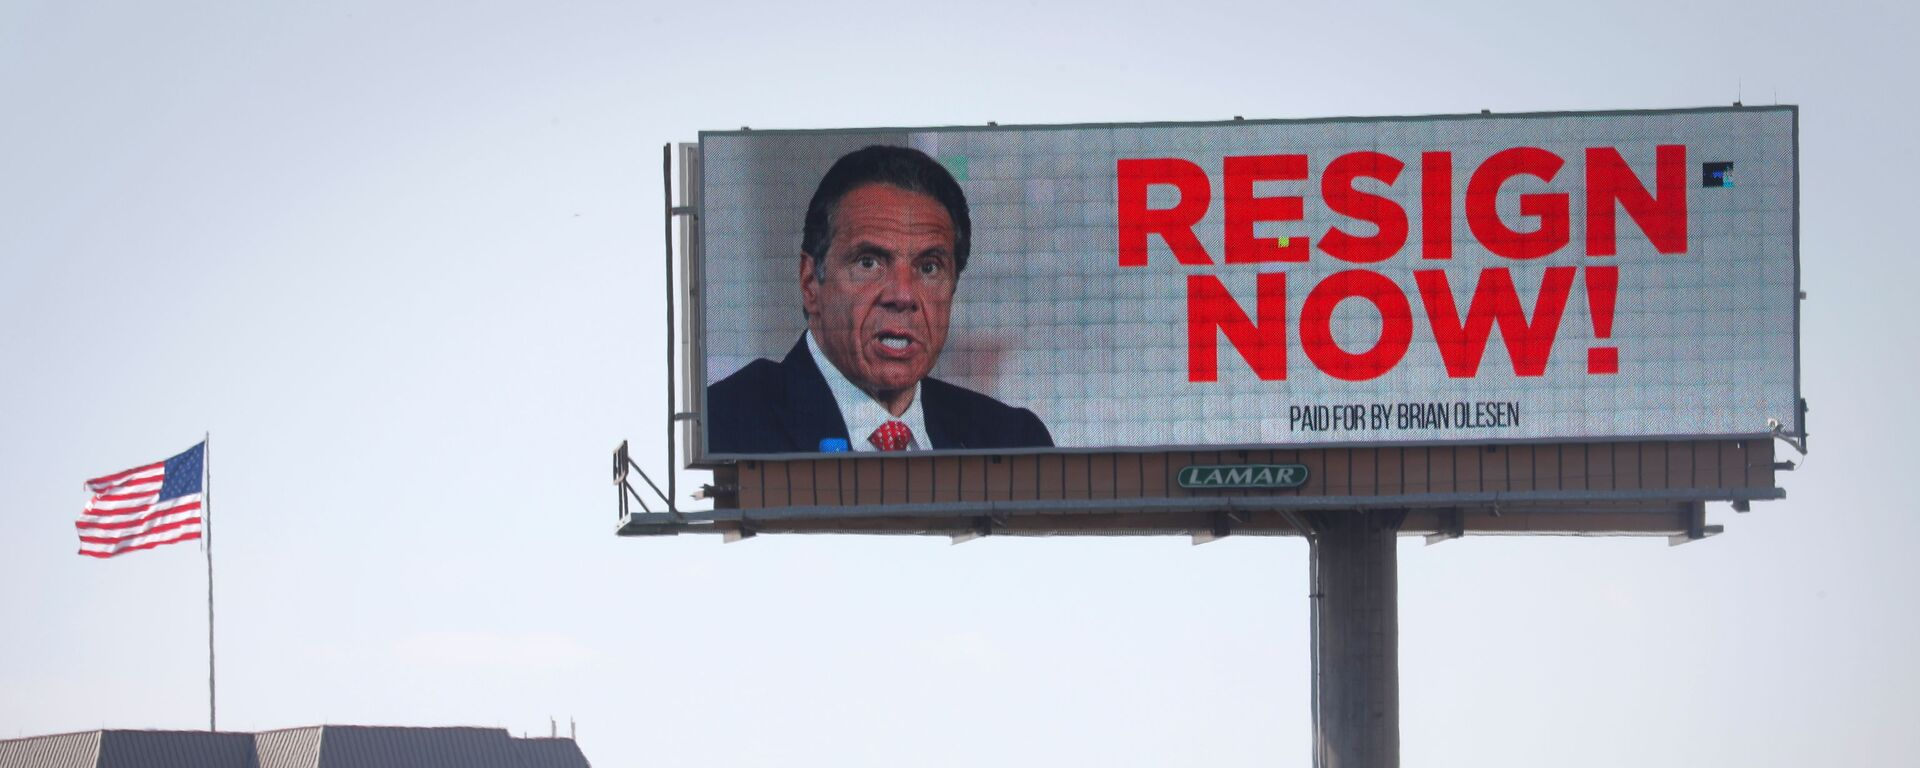 Electronic billboard displays message for New York Governor Cuomo to Resign Now in Albany - Sputnik Italia, 1920, 17.03.2021